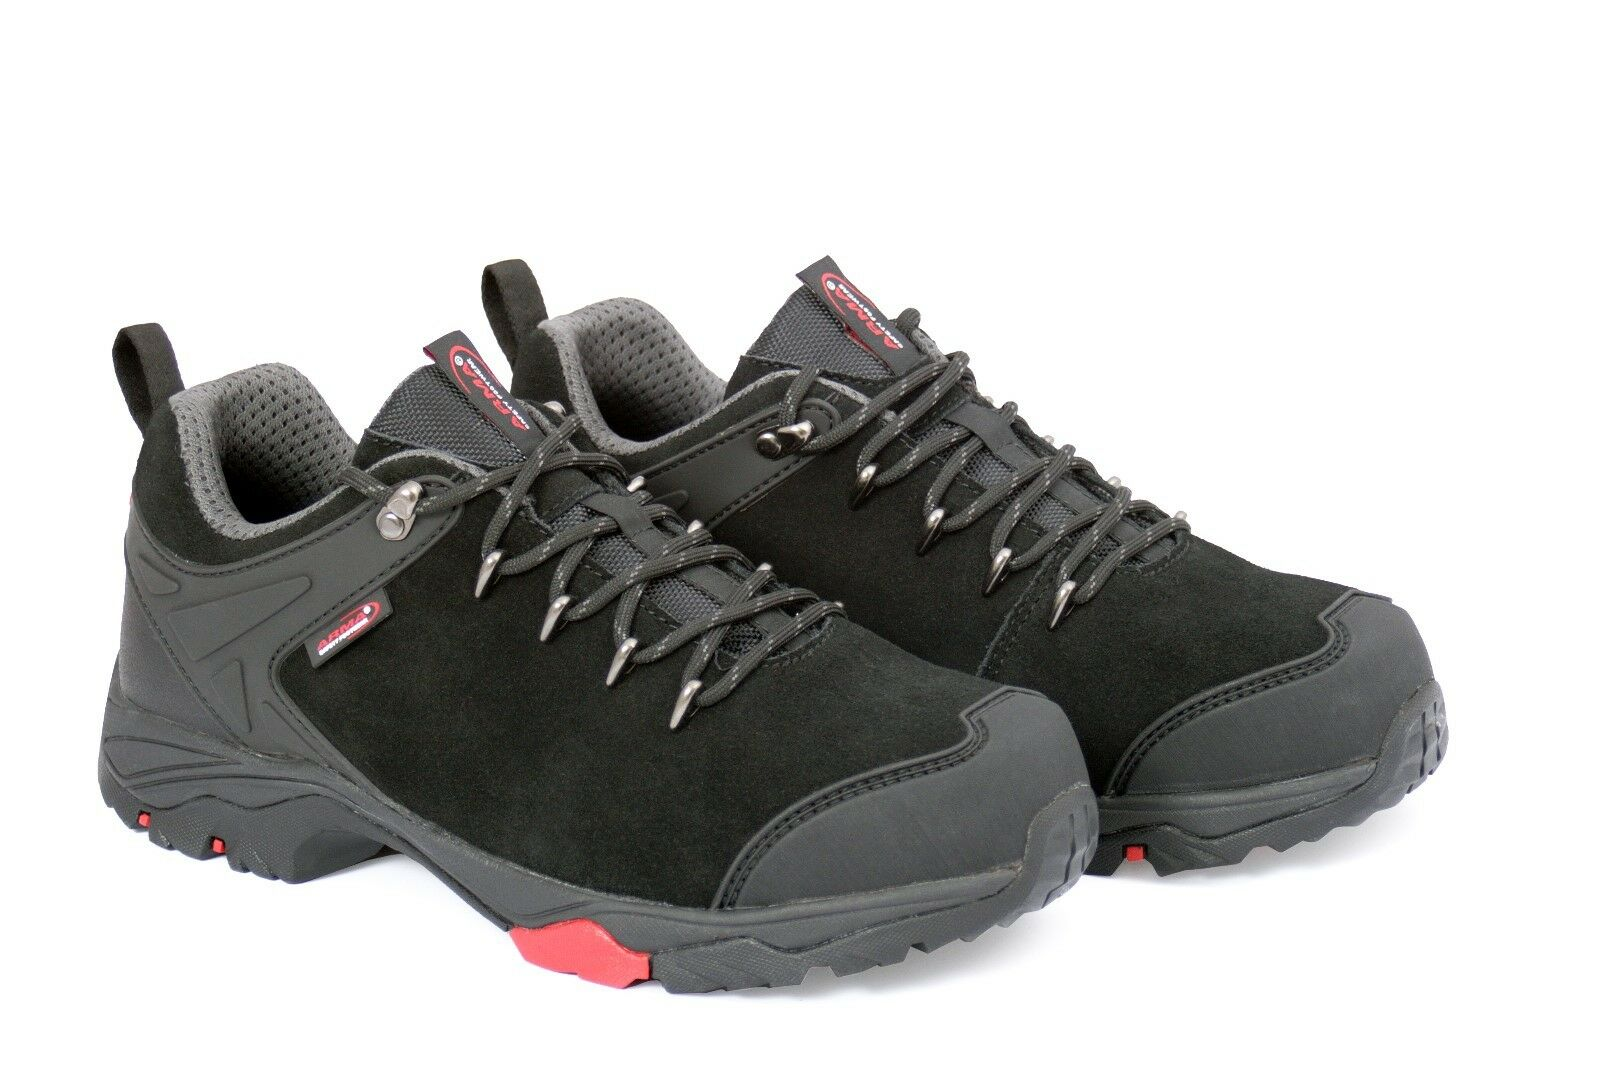 Arma Work A4 Foxhound Negro Leather Work Arma Safety Trainers Zapatos Steel Toe Mid Sole SRA dc1163